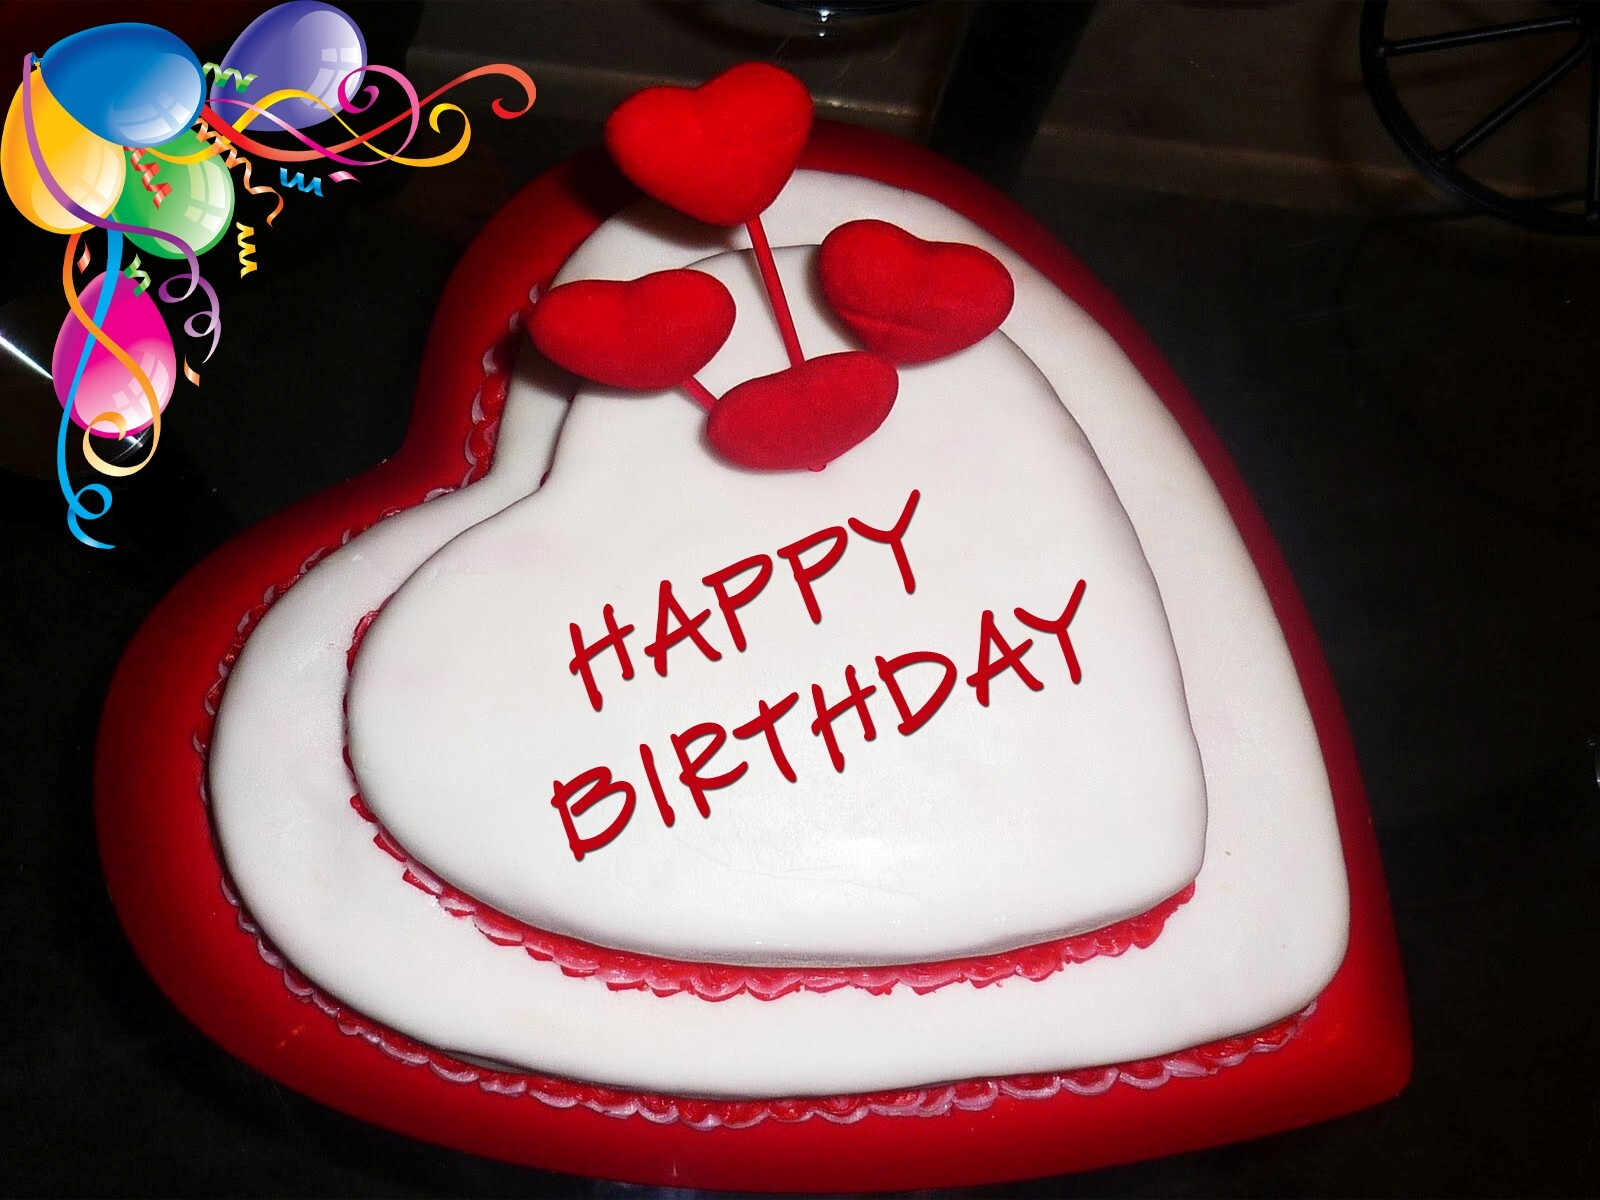 Happy Birthday In Heart Shape Cake Hd Wallpapers Hd Wallpapers